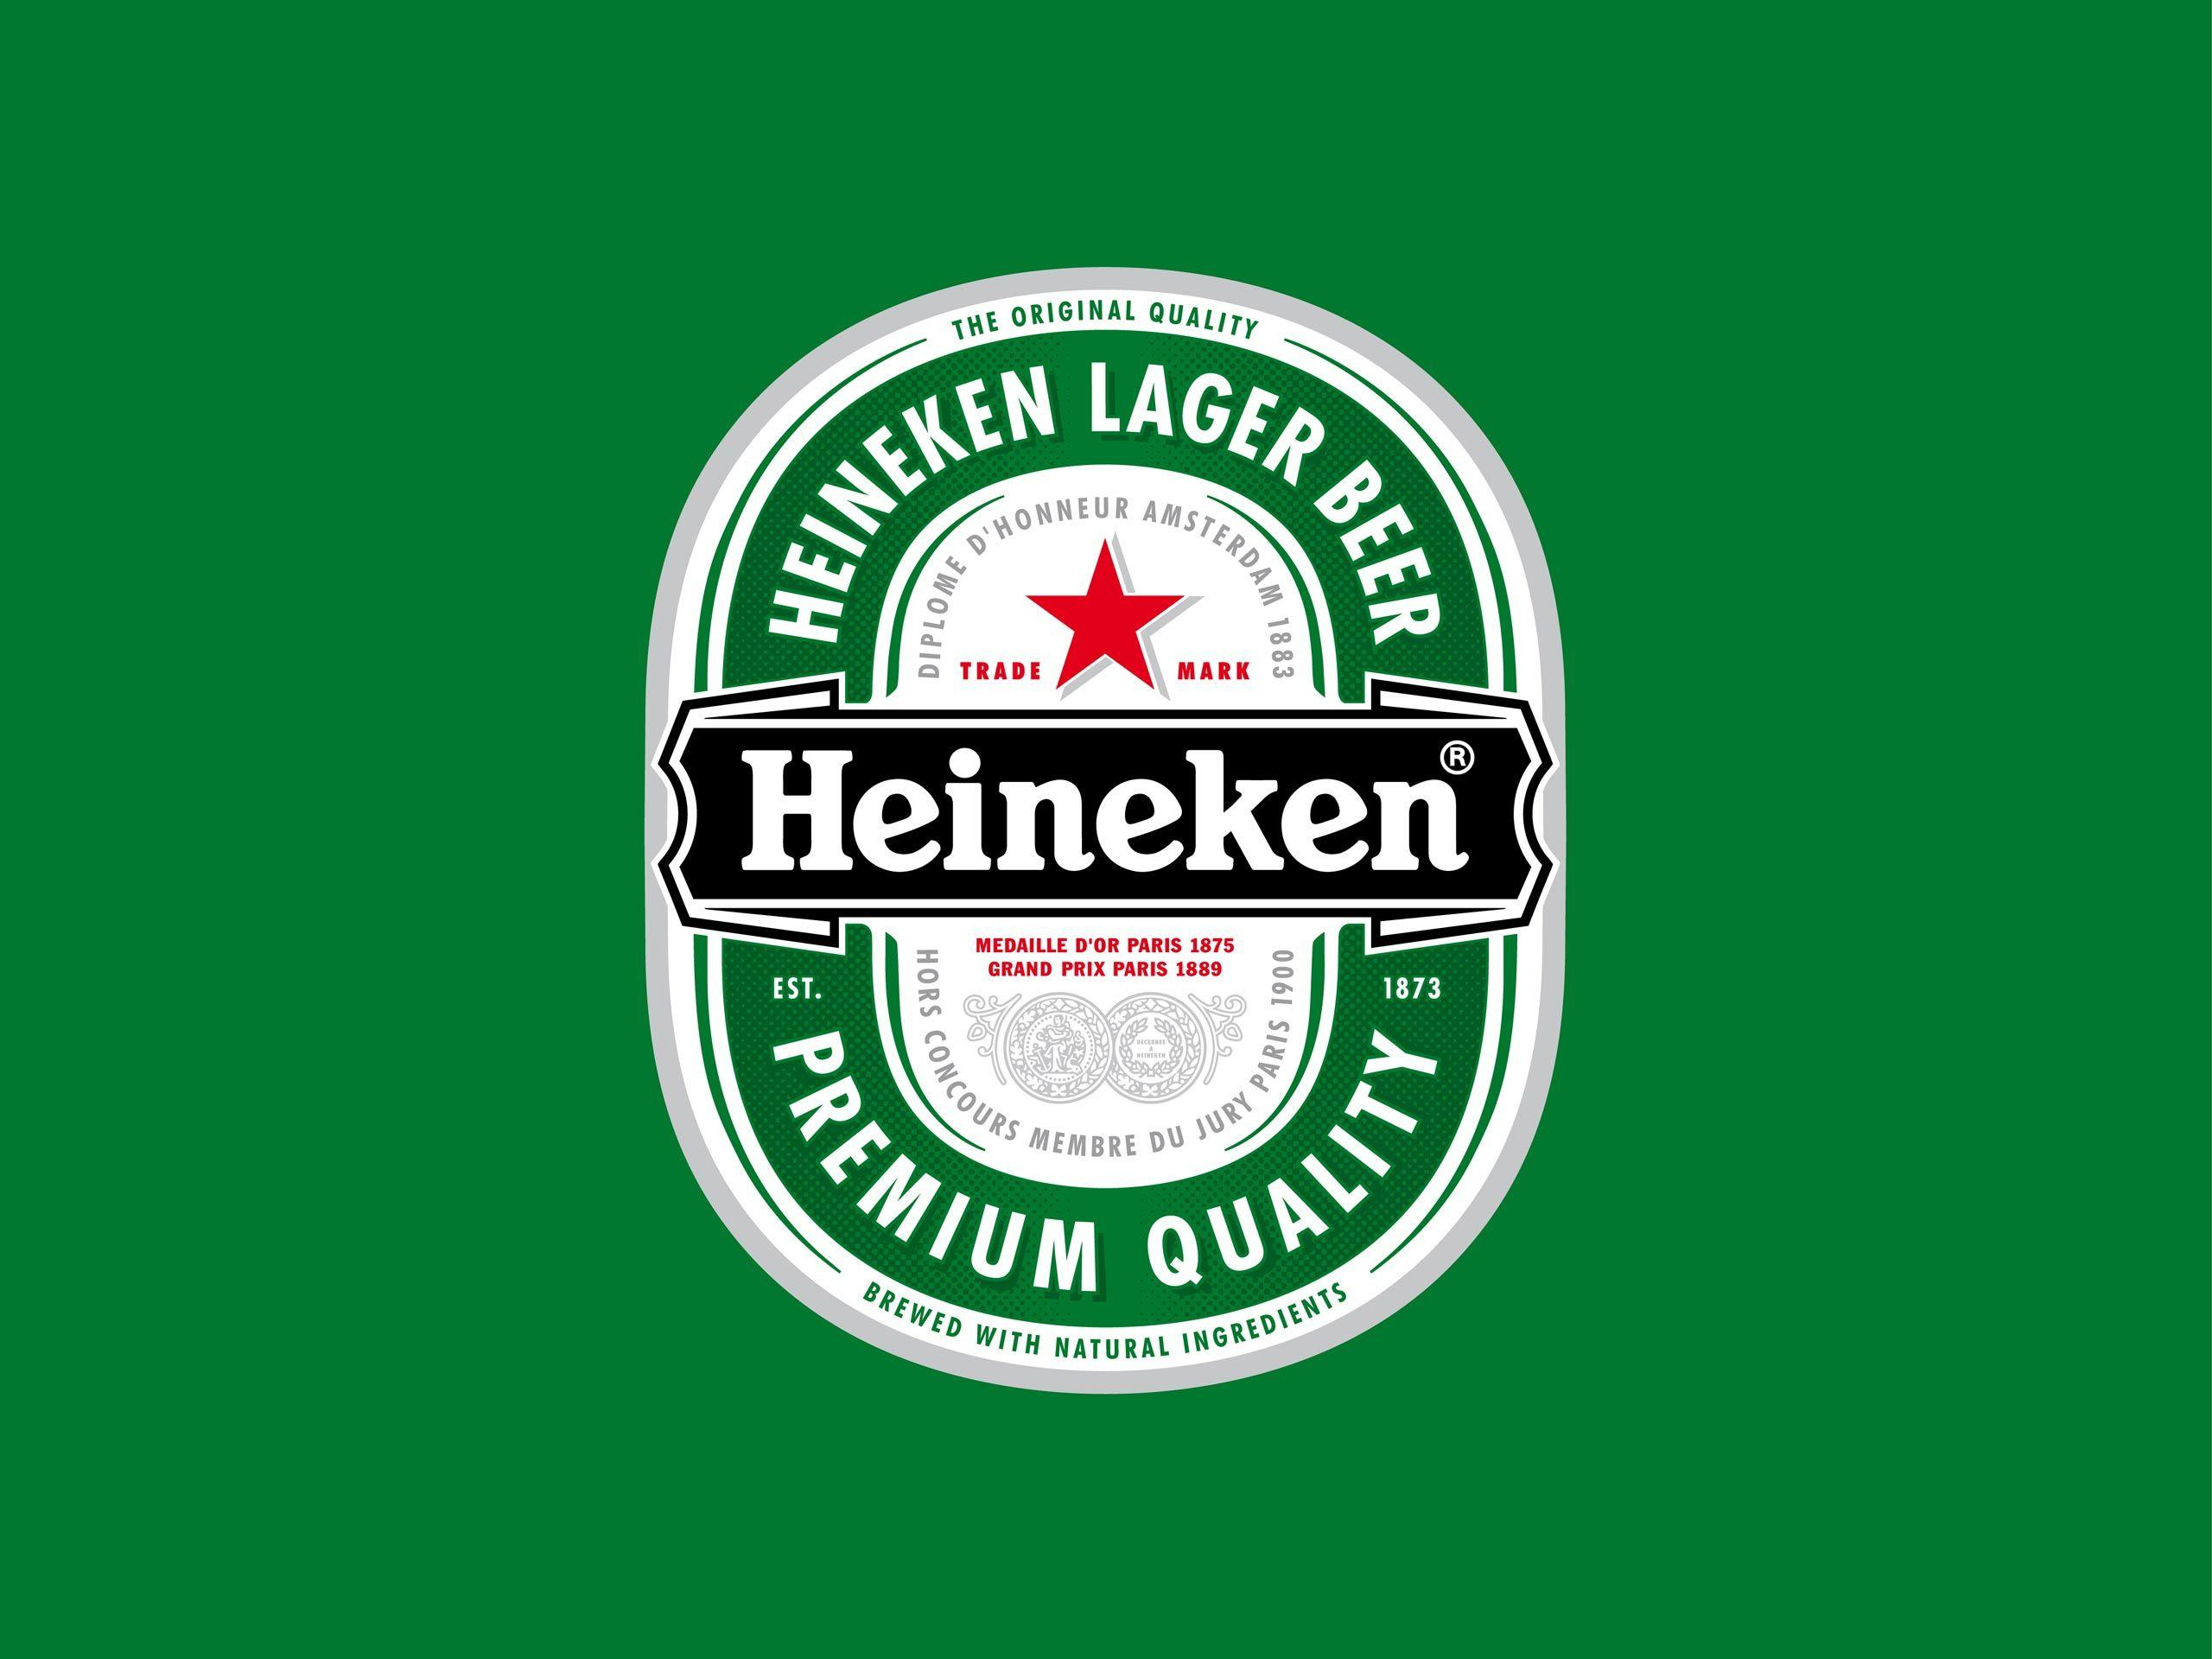 Free Wallpapers - Free heineken wallpapers